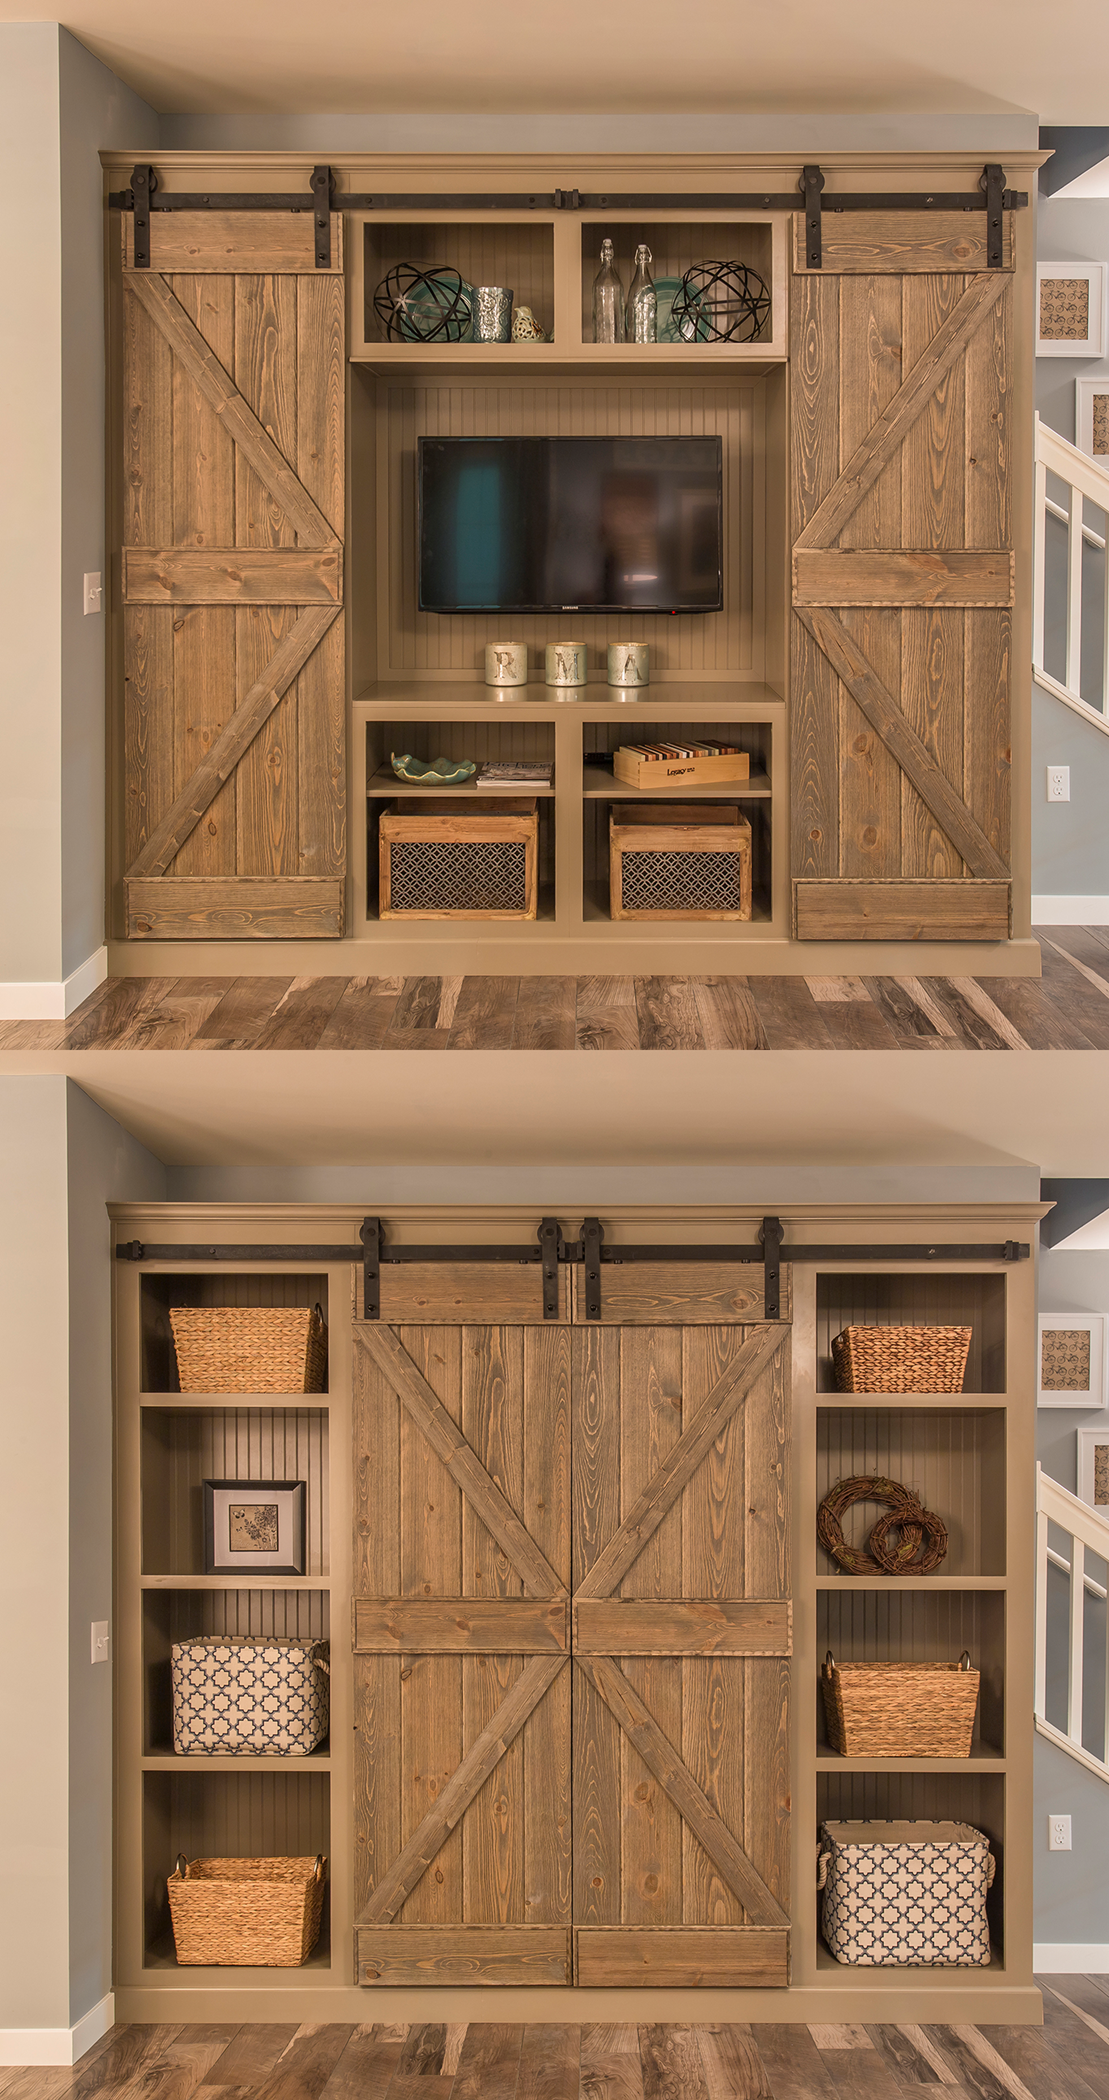 Visit Our Showroom In Stoney Creek To See A Beautiful Piece Similar To This From Magnussen Home Furnishings W Barn Door Projects Home Remodeling Home Projects